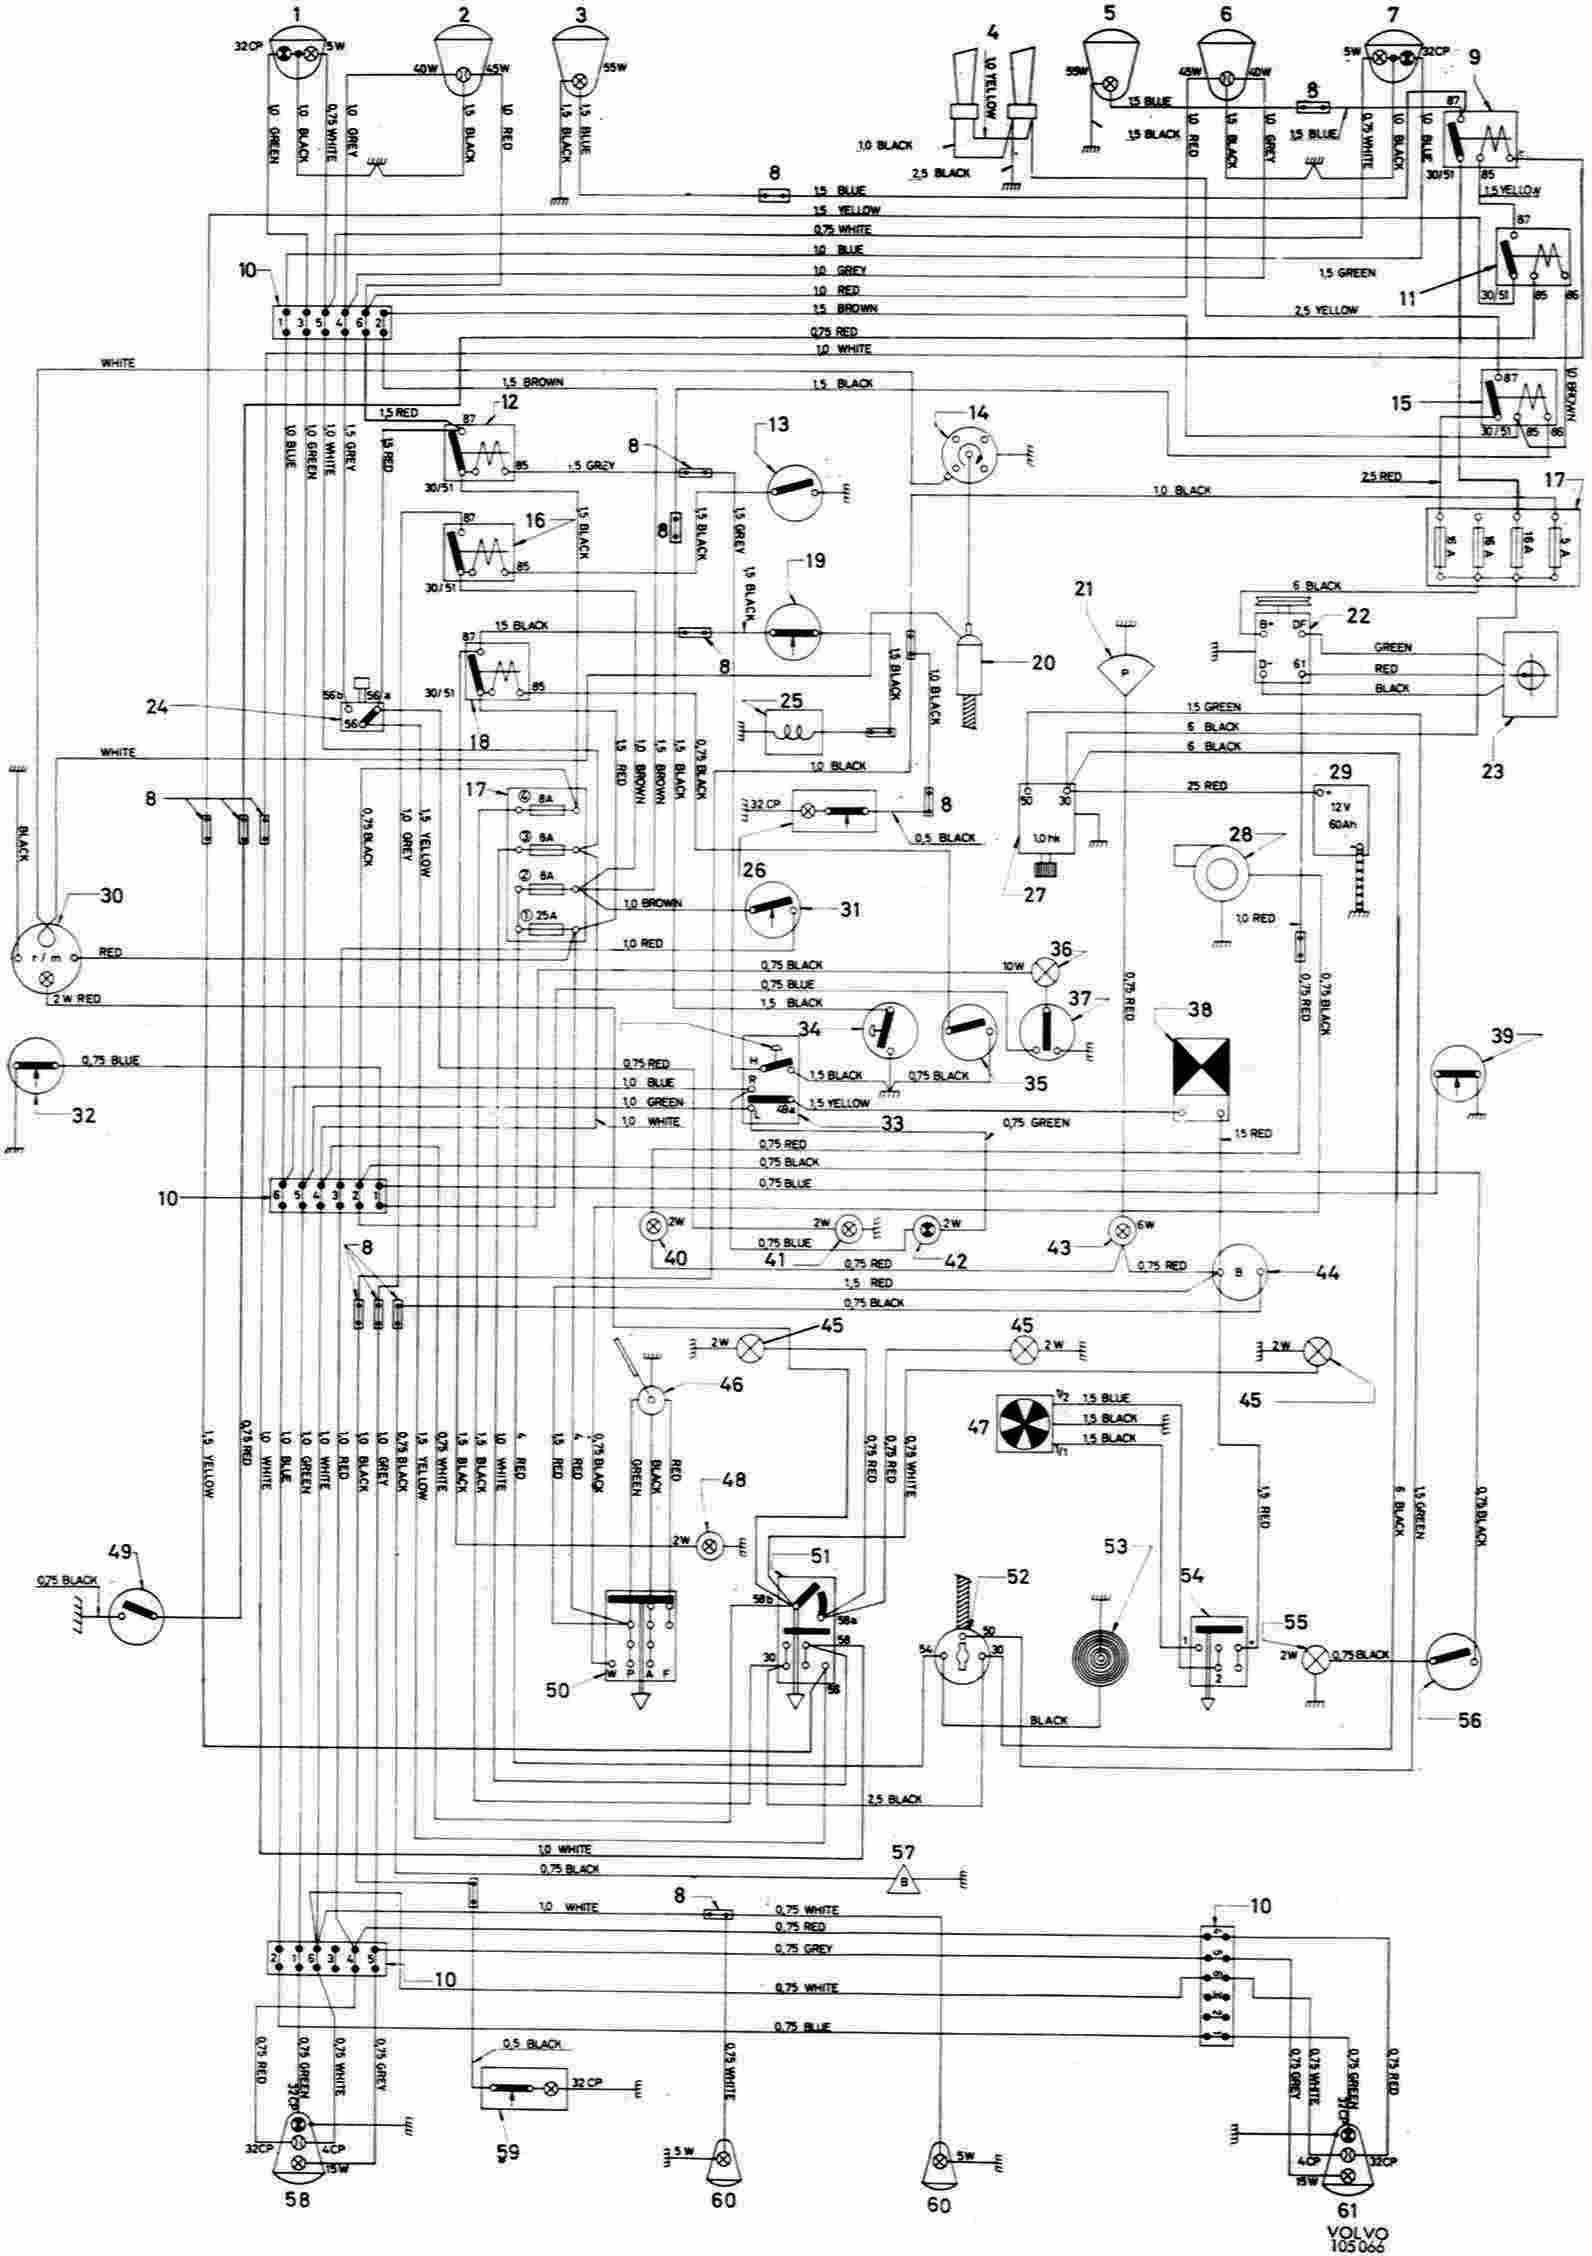 1986 Volvo 740 Wiring Diagram Wiring Diagram